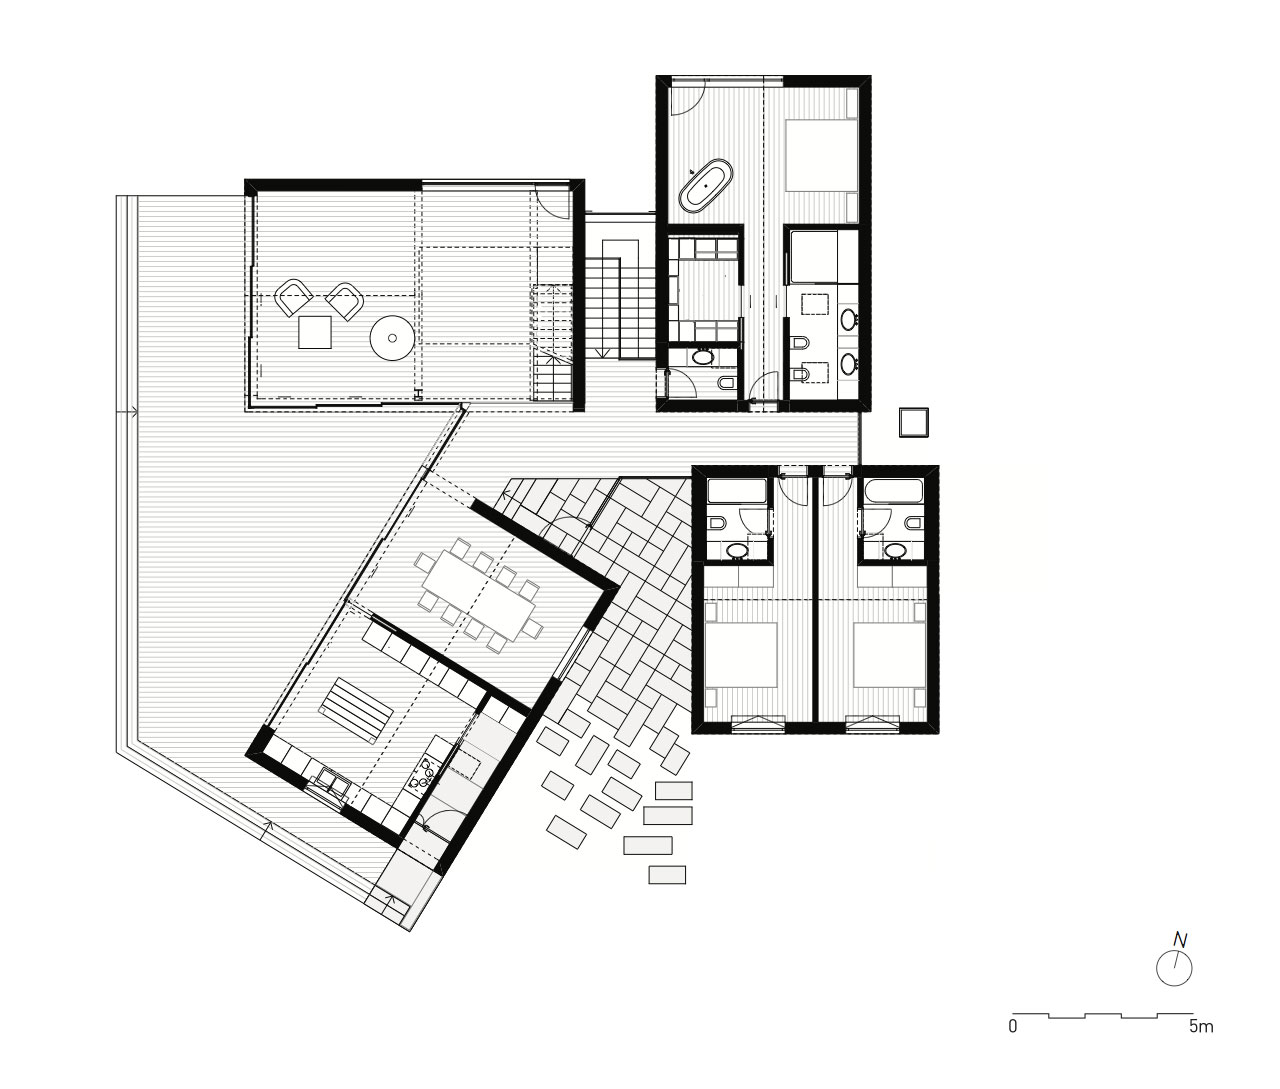 Main Floor Plan, © PROD Arquitectura.